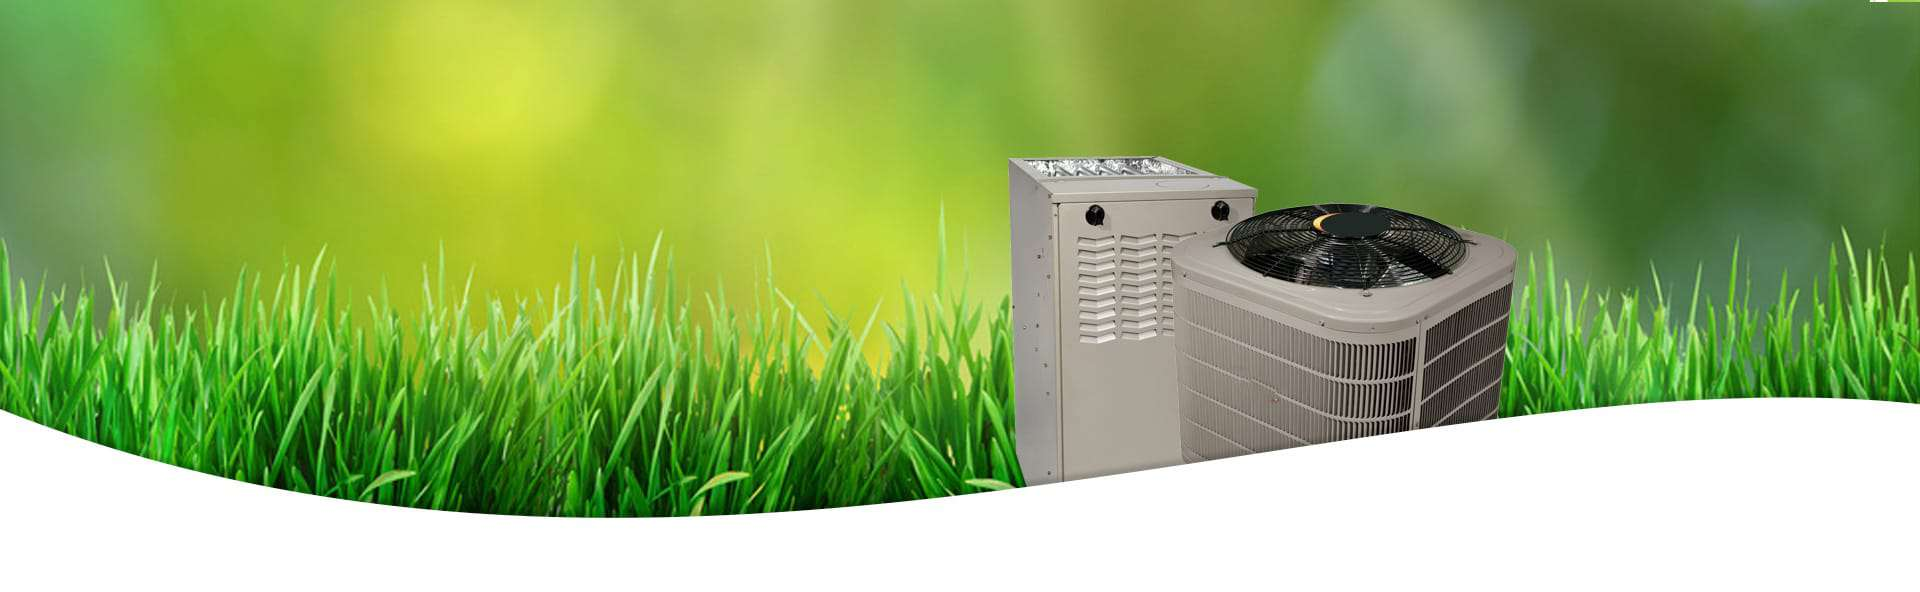 air-conditioner-tune-up-repair-philadelphia-1